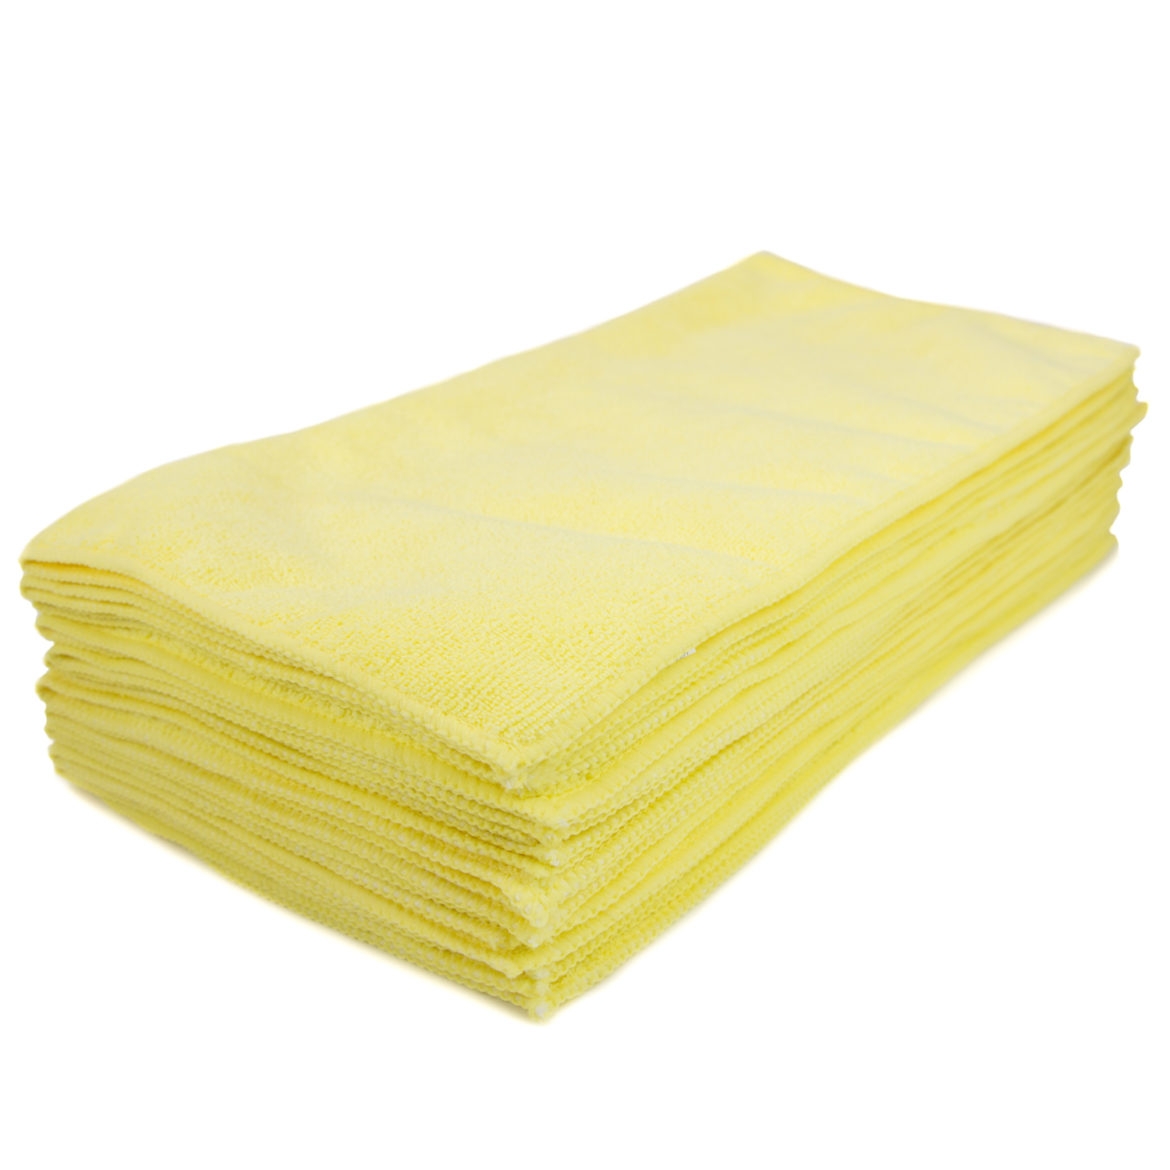 "Yellow Microfiber Cleaning Towel 16 x 16"", Package Of 12"